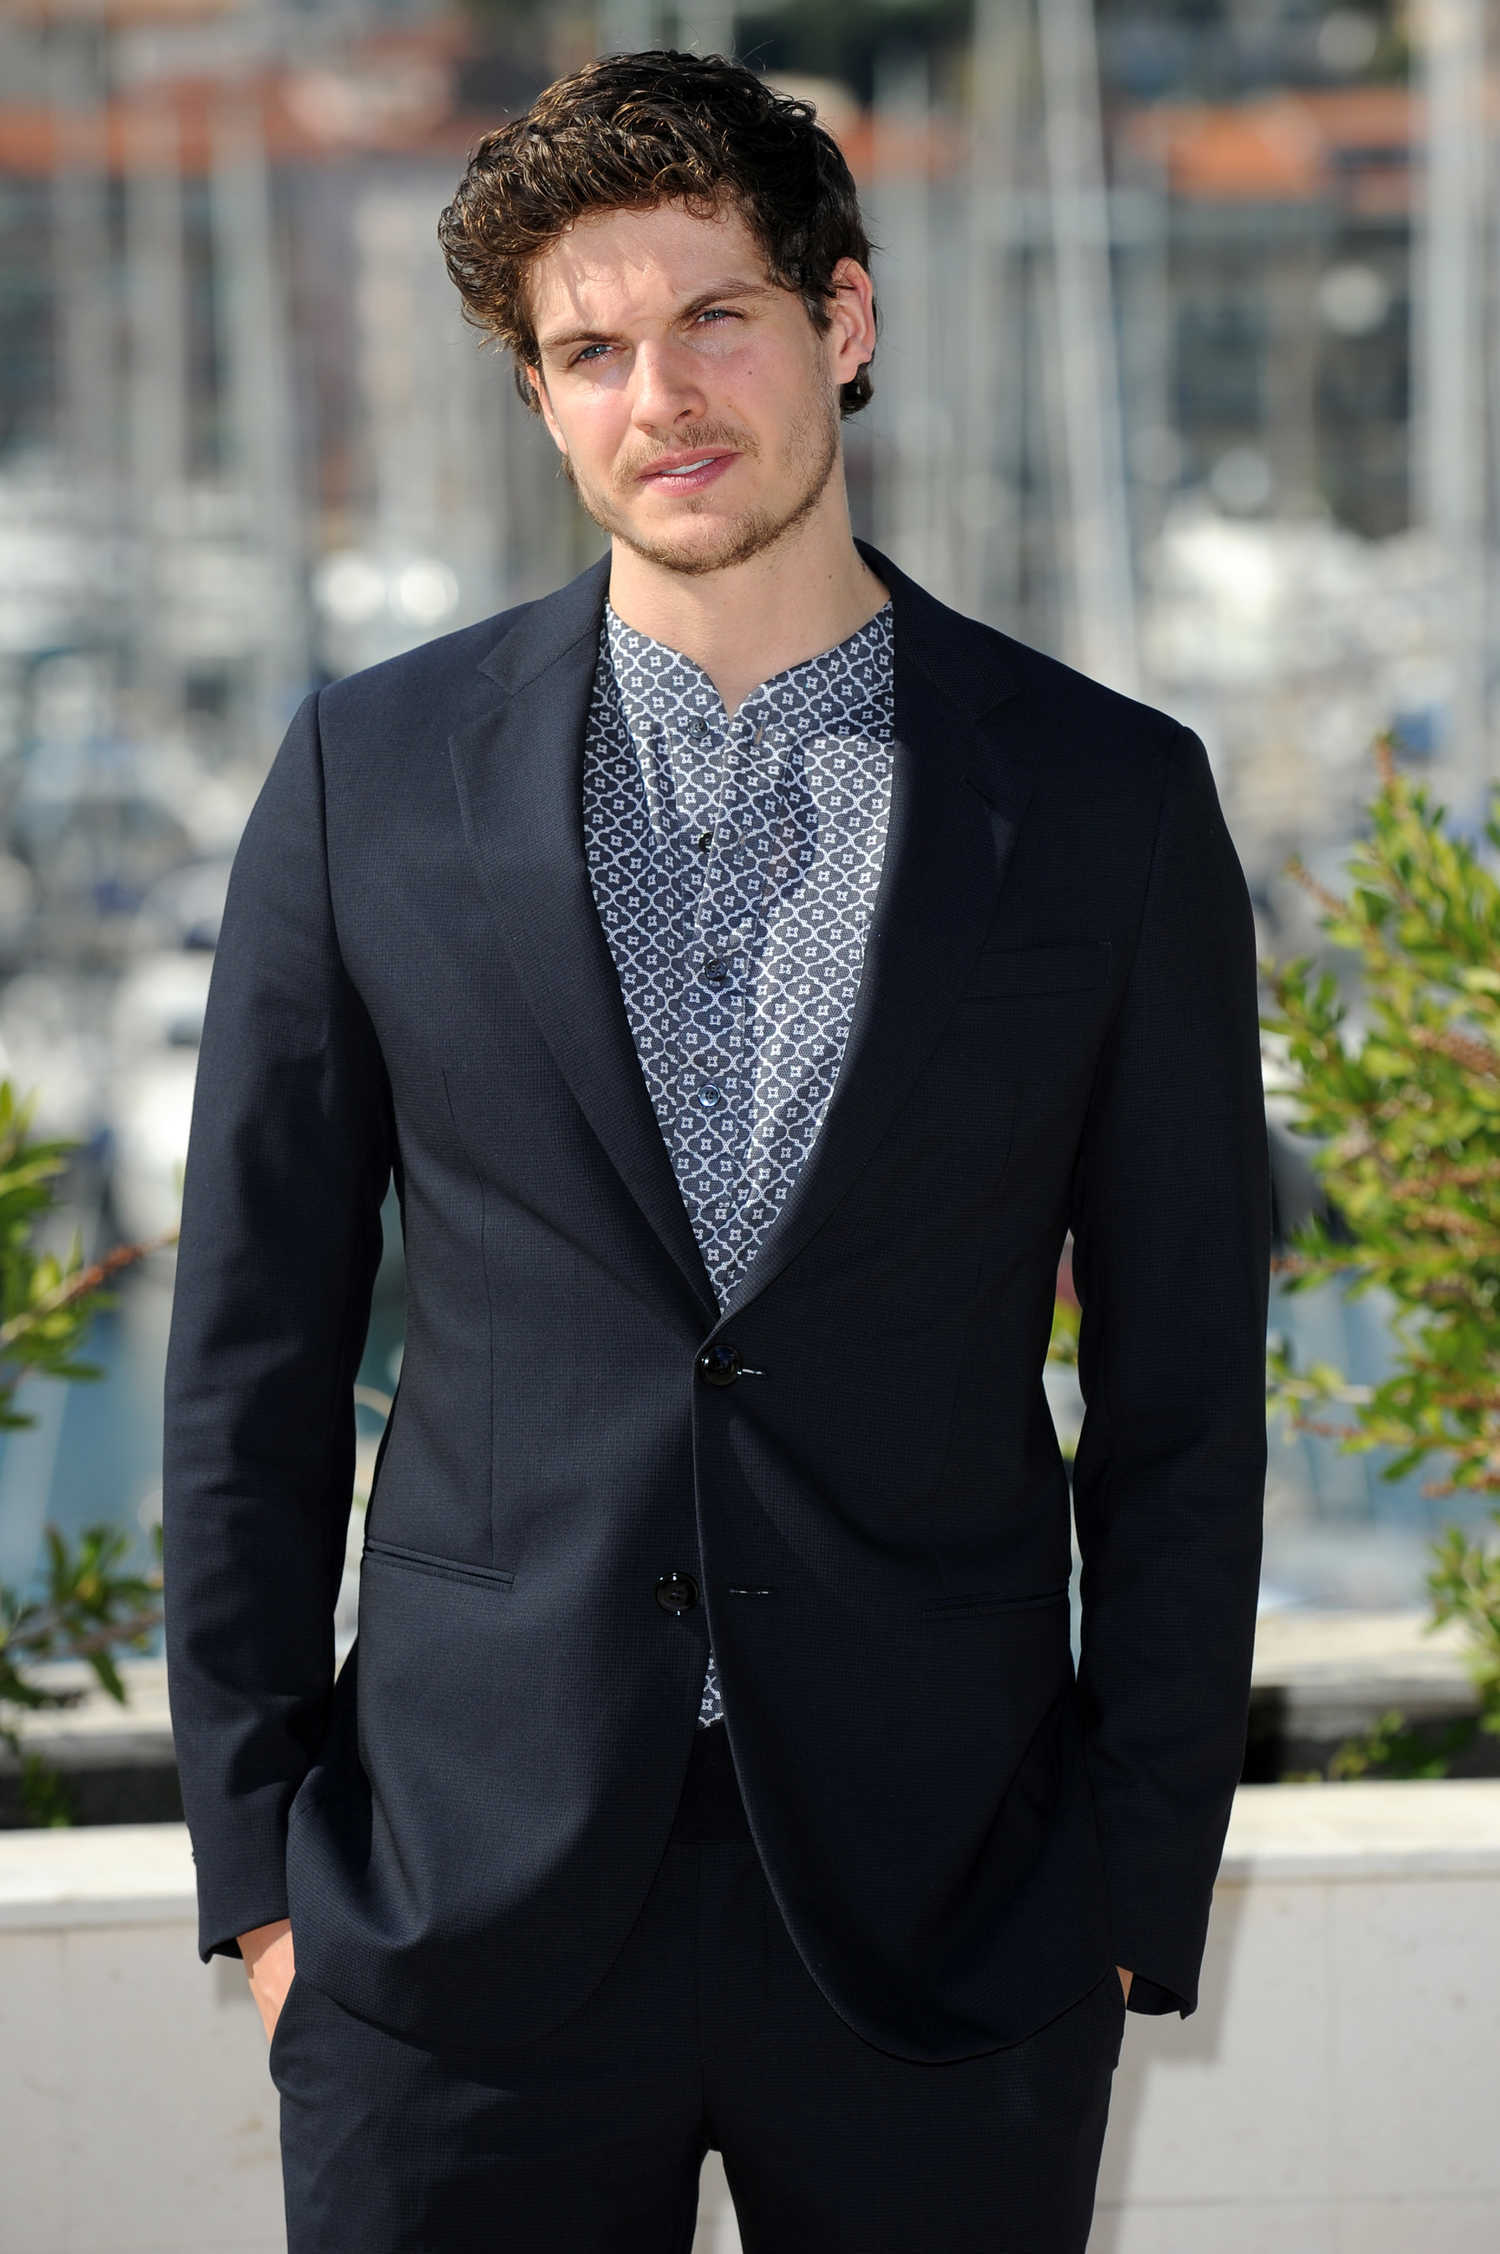 Daniel Sharman Attends Medici Photocall During MipCom in Cannes – Celeb Donut